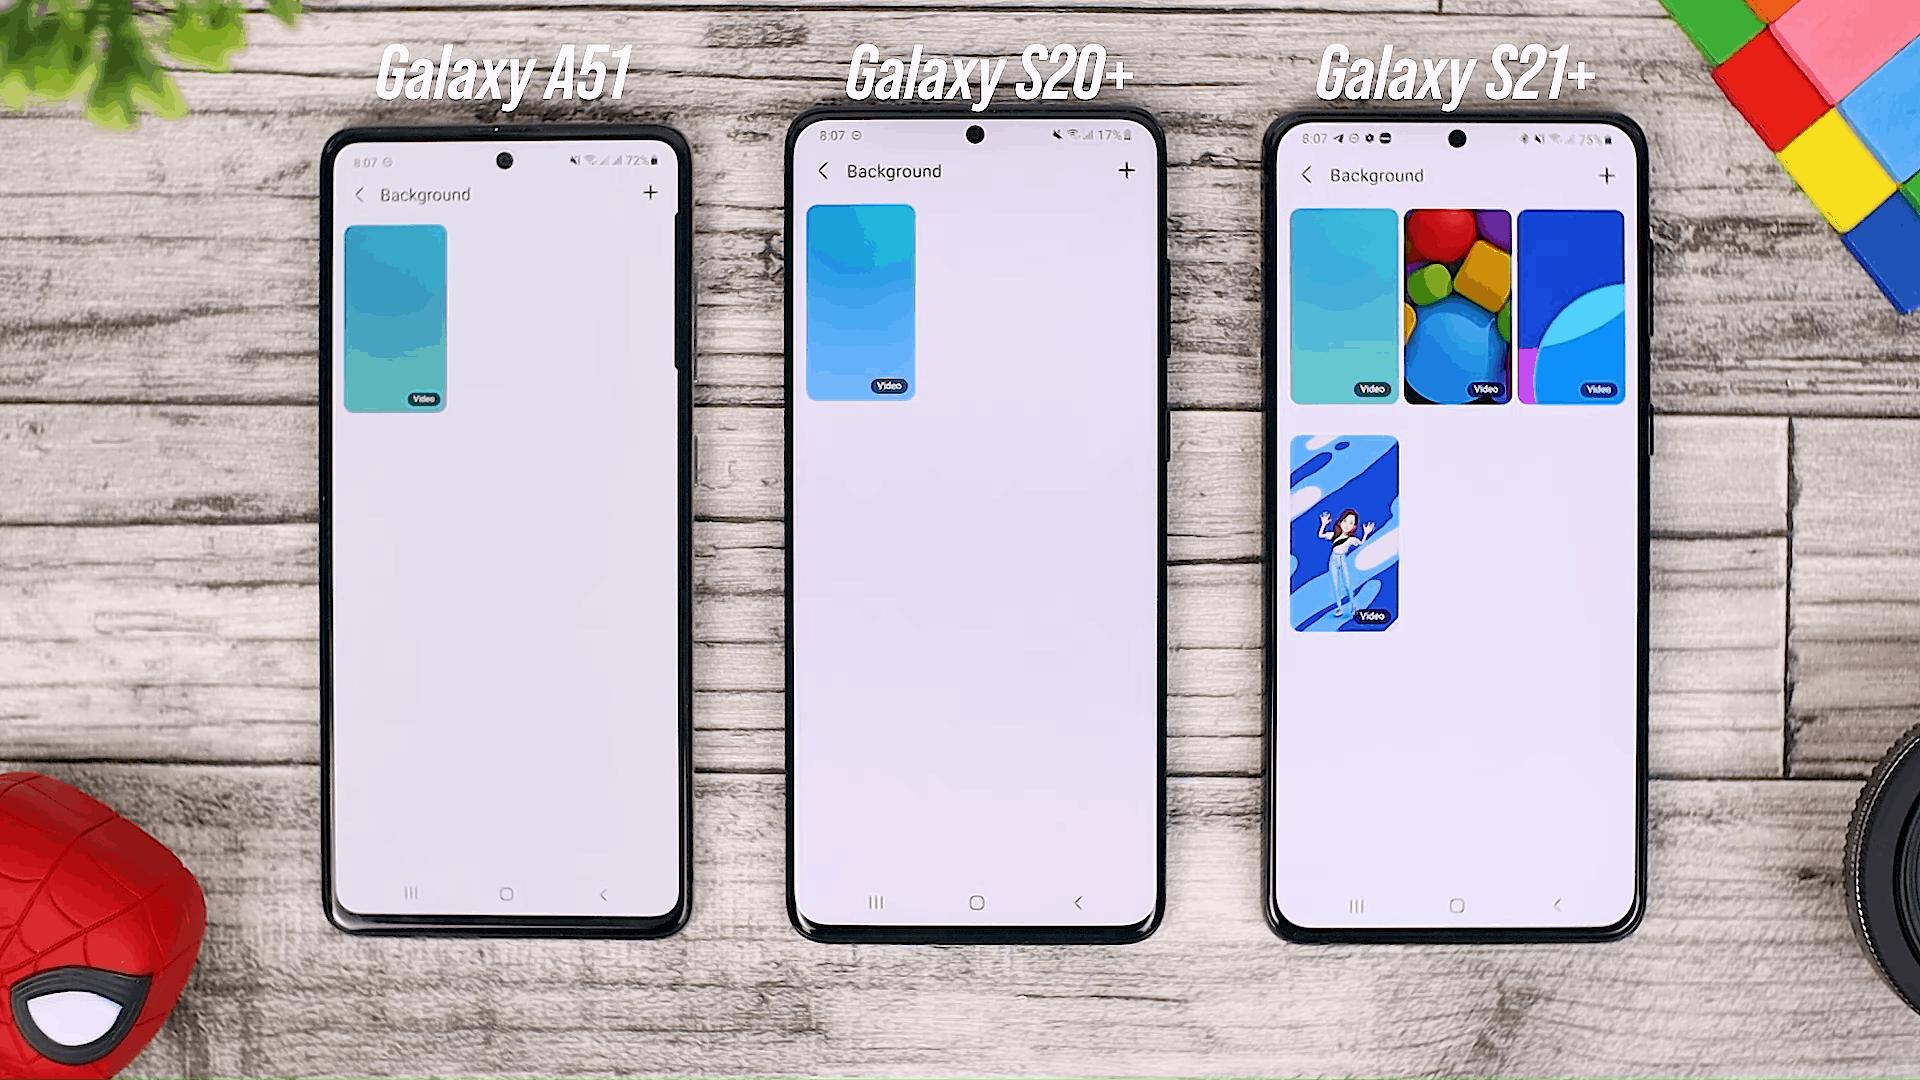 Call Background Option - One UI 3.0 features of Samsung Galaxy A51 and its comparison with the Galaxy S20+ and One UI 3.1 on the Galaxy S21+